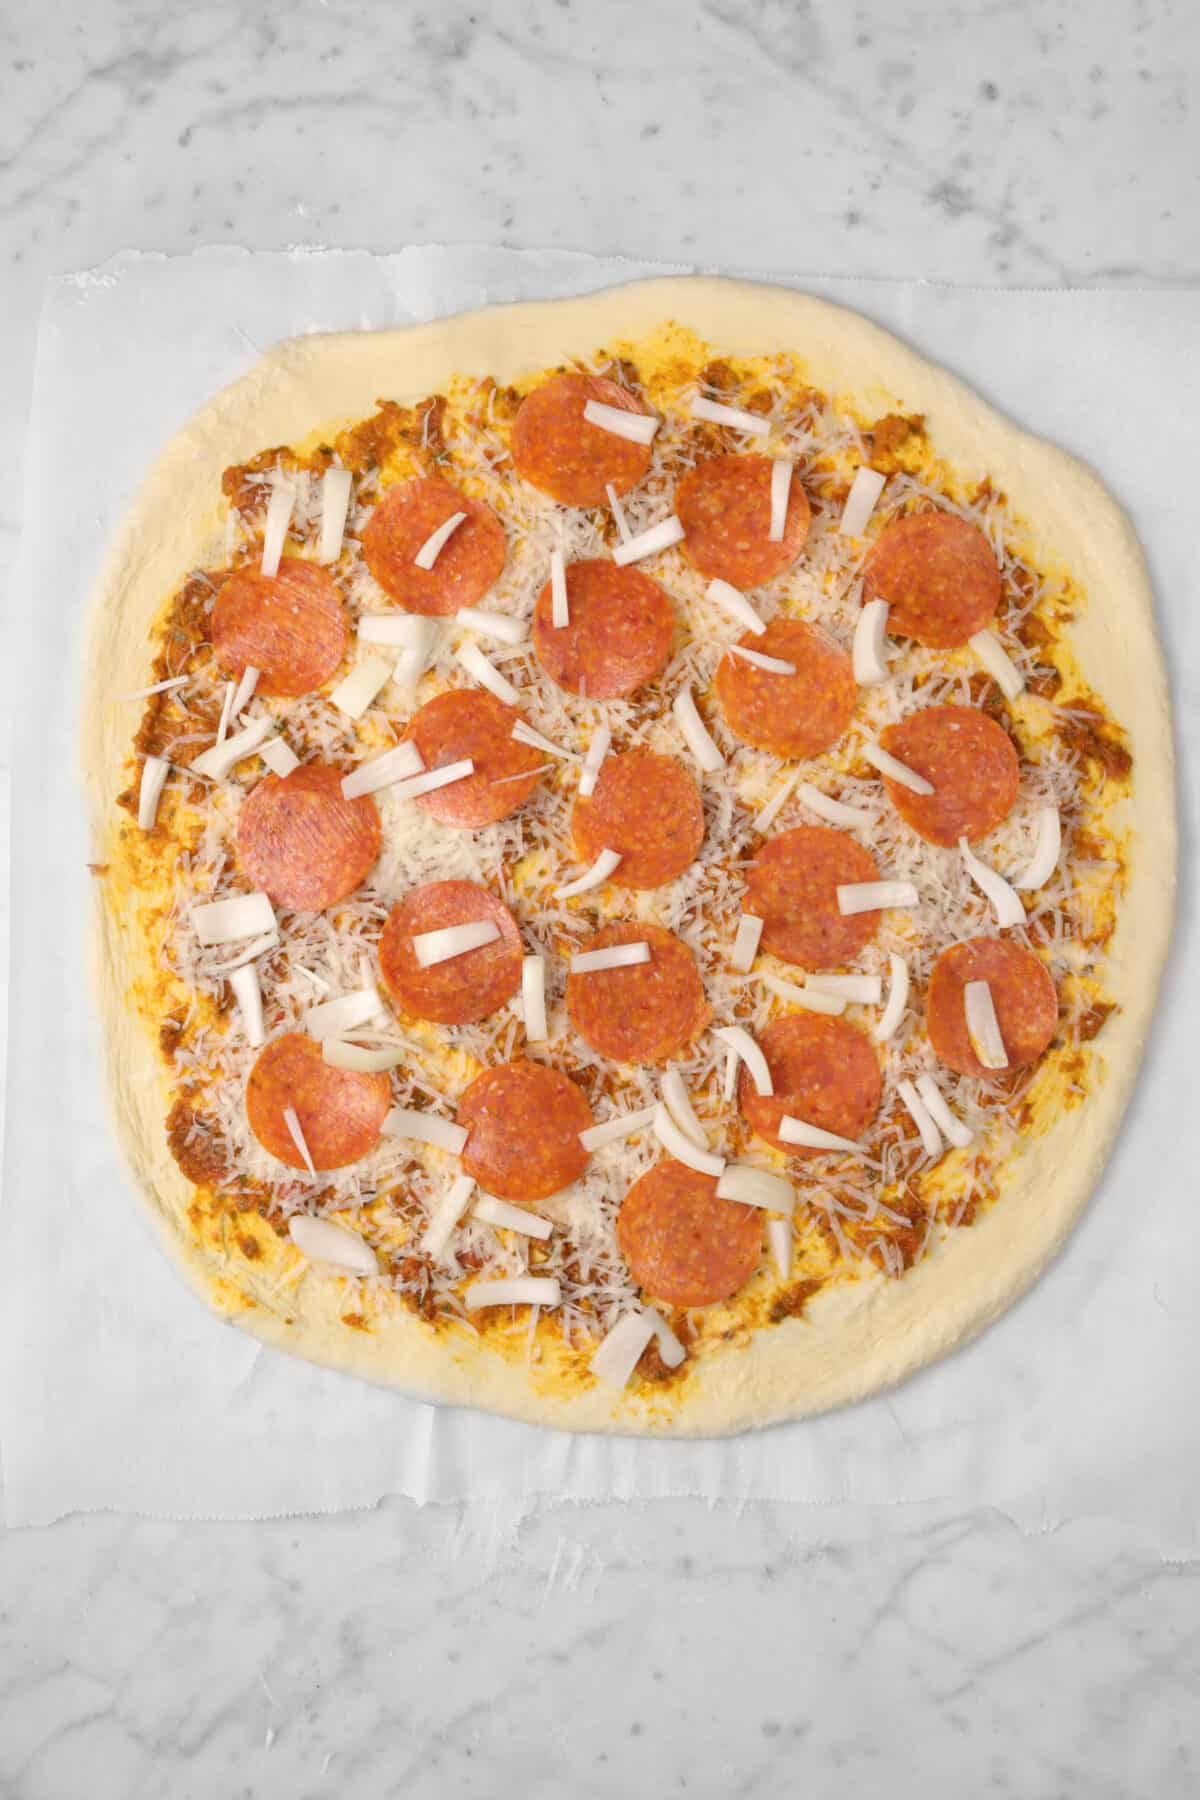 sliced yellow onions added on top of pepperoni layer on pizza dough